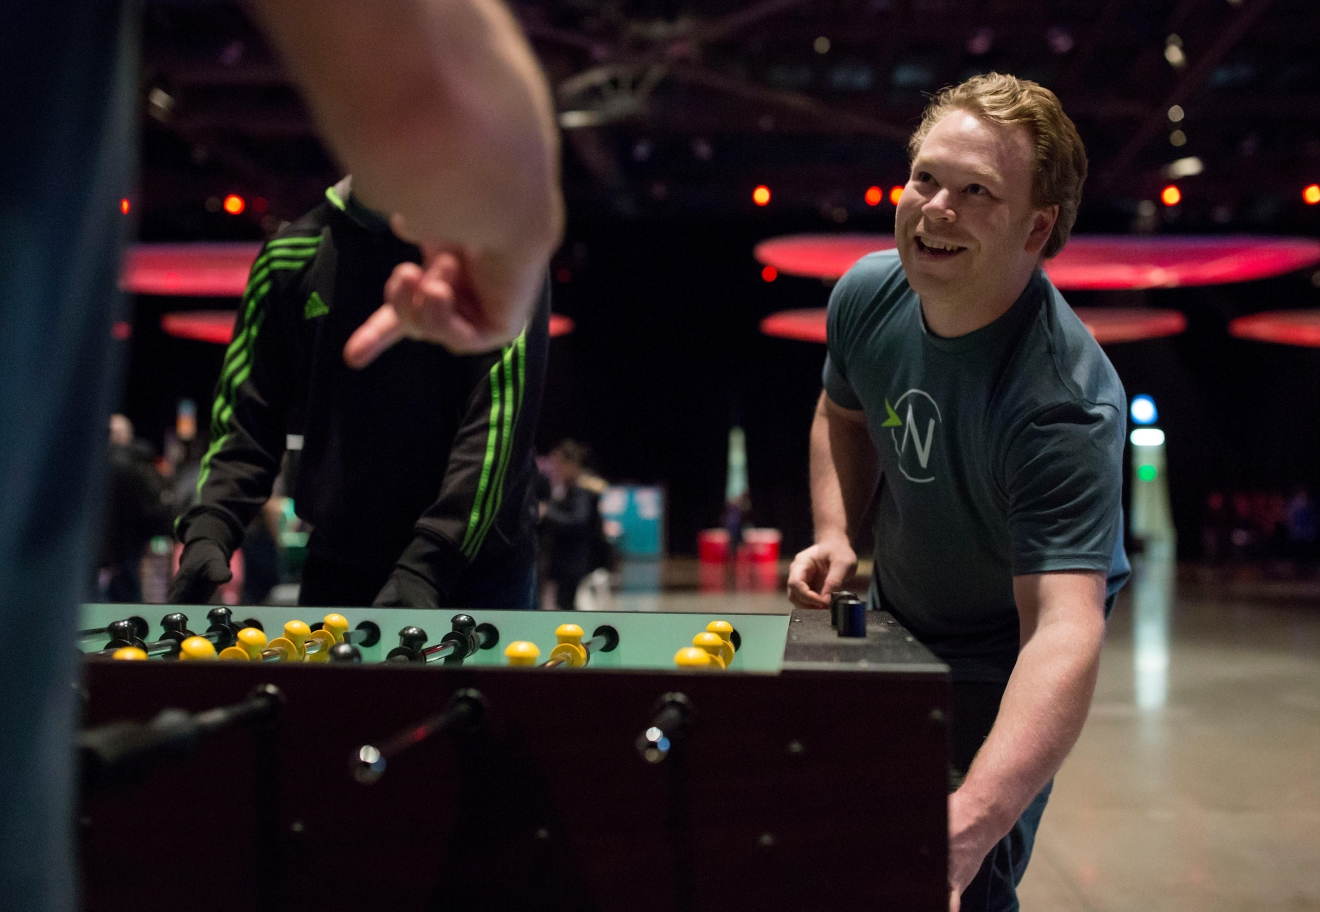 Navigating Cancer employee Skylar Broad retrieves the foosball during a game against coworkers at the 6th annual Geekwire Bash at the CenturyLink Event Center. (Sy Bean / Seattle Refined)